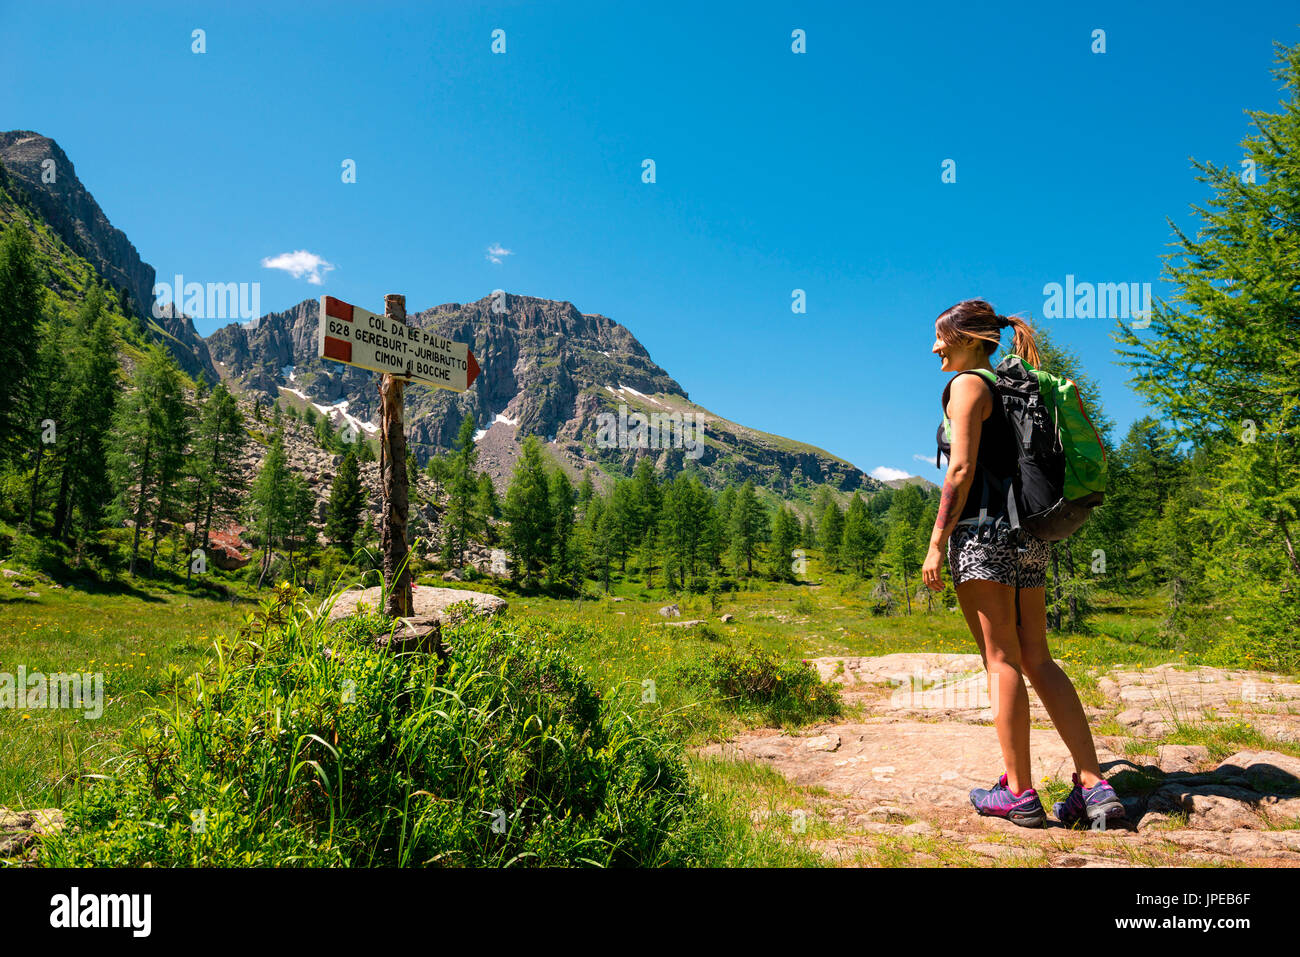 Europe, Italy, Trentino Alto Adige. hiker looks signage CAI / SAT 628 along the trial  from the Cimon di Bocche, Stock Photo